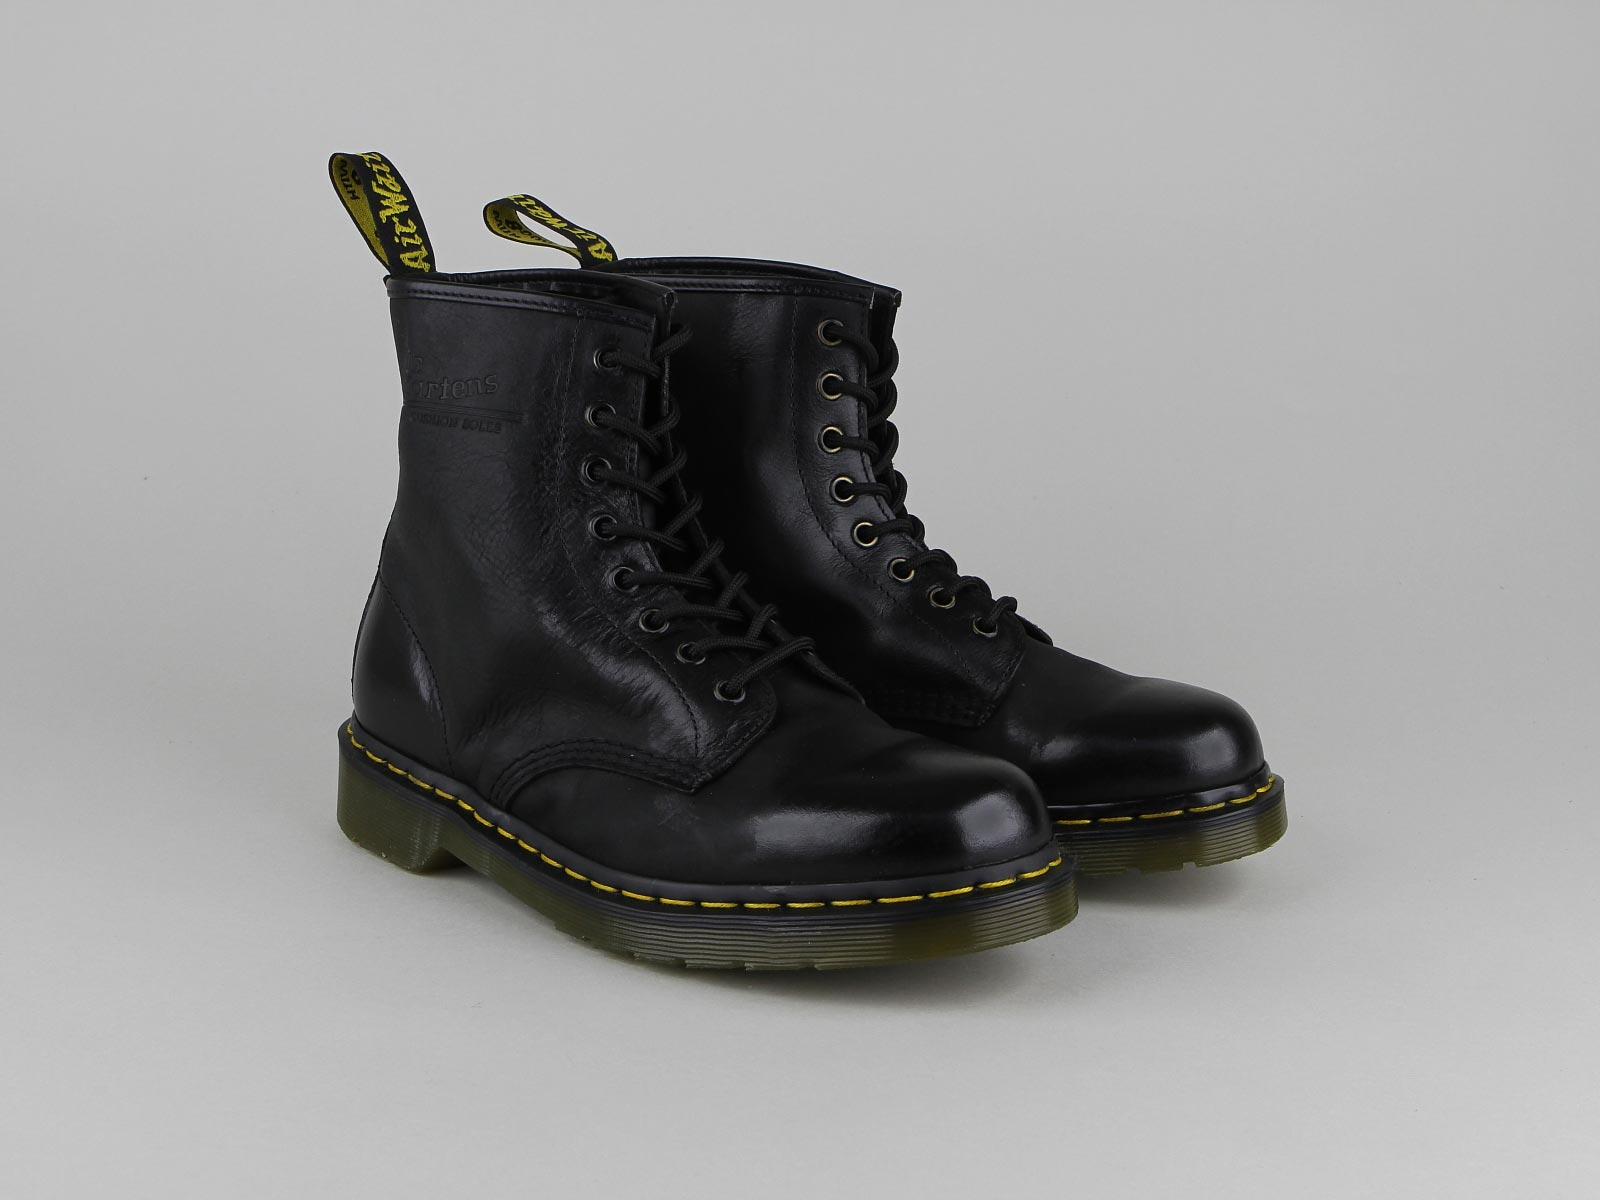 f61a9f89b66 Chaussure Homme Doc Martens. chaussures homme dr martens achat vente ...